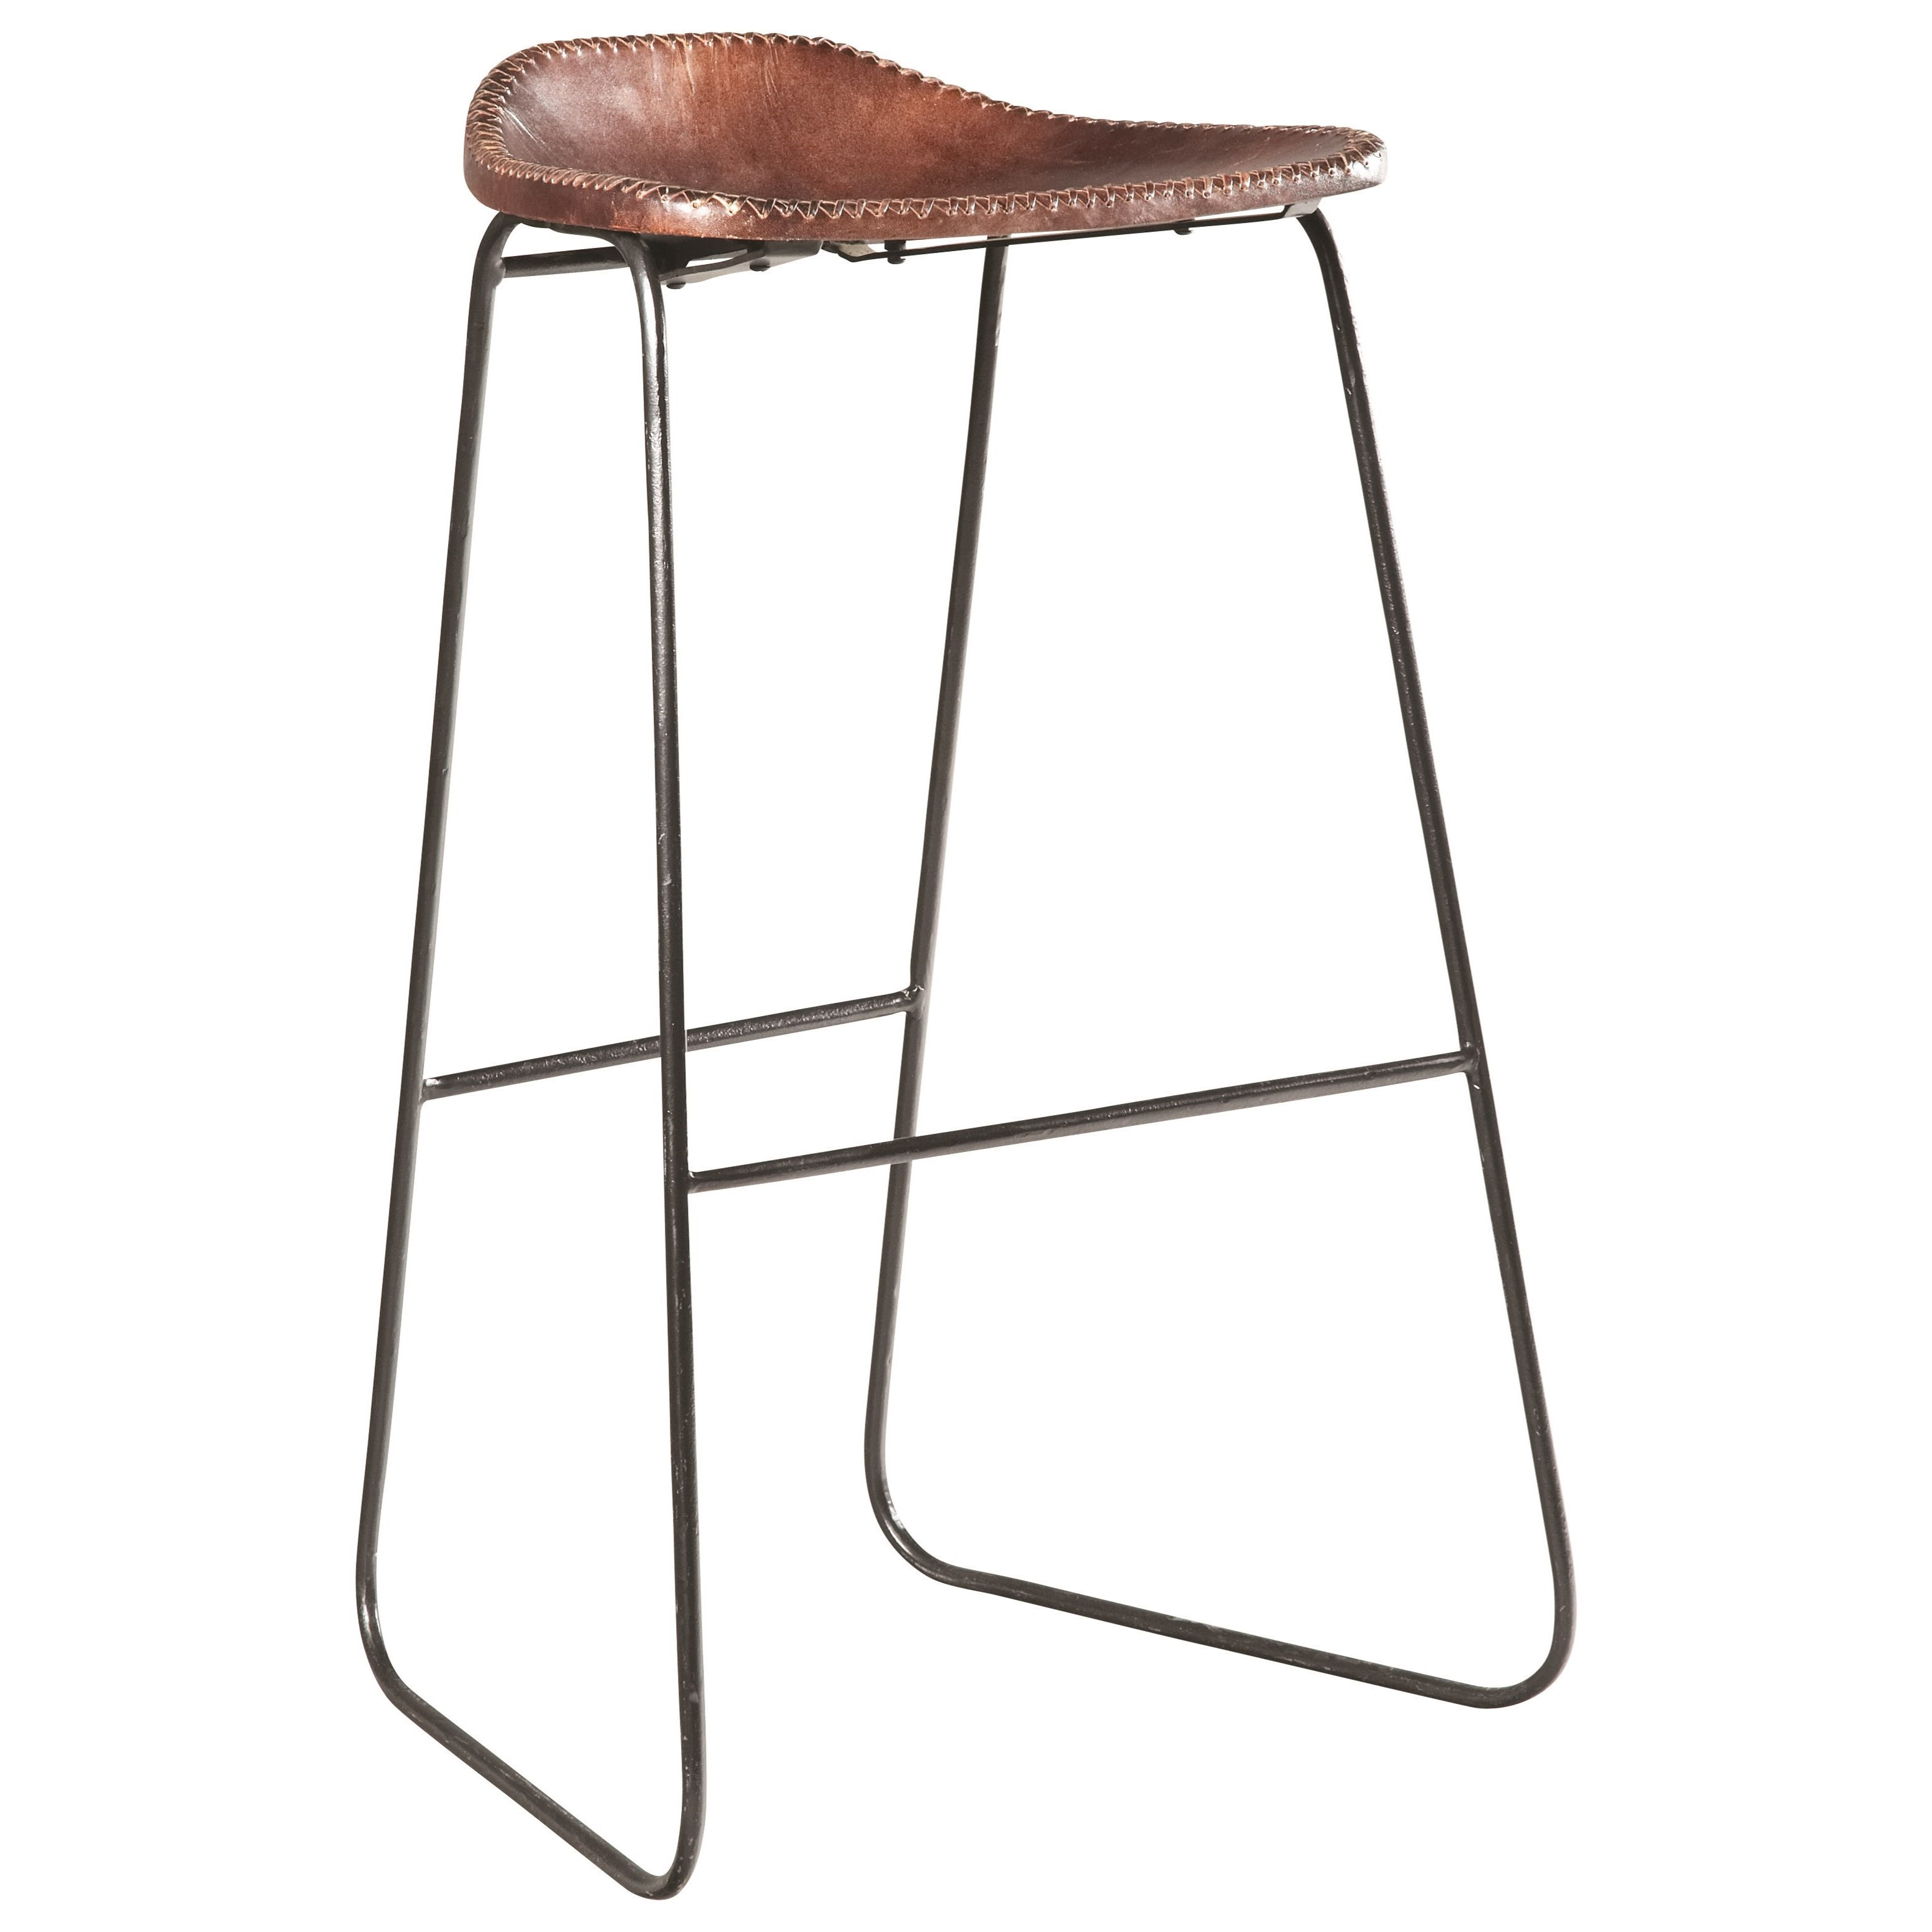 Coaster Dining Chairs and Bar Stools Bar Stool - Item Number: 180213